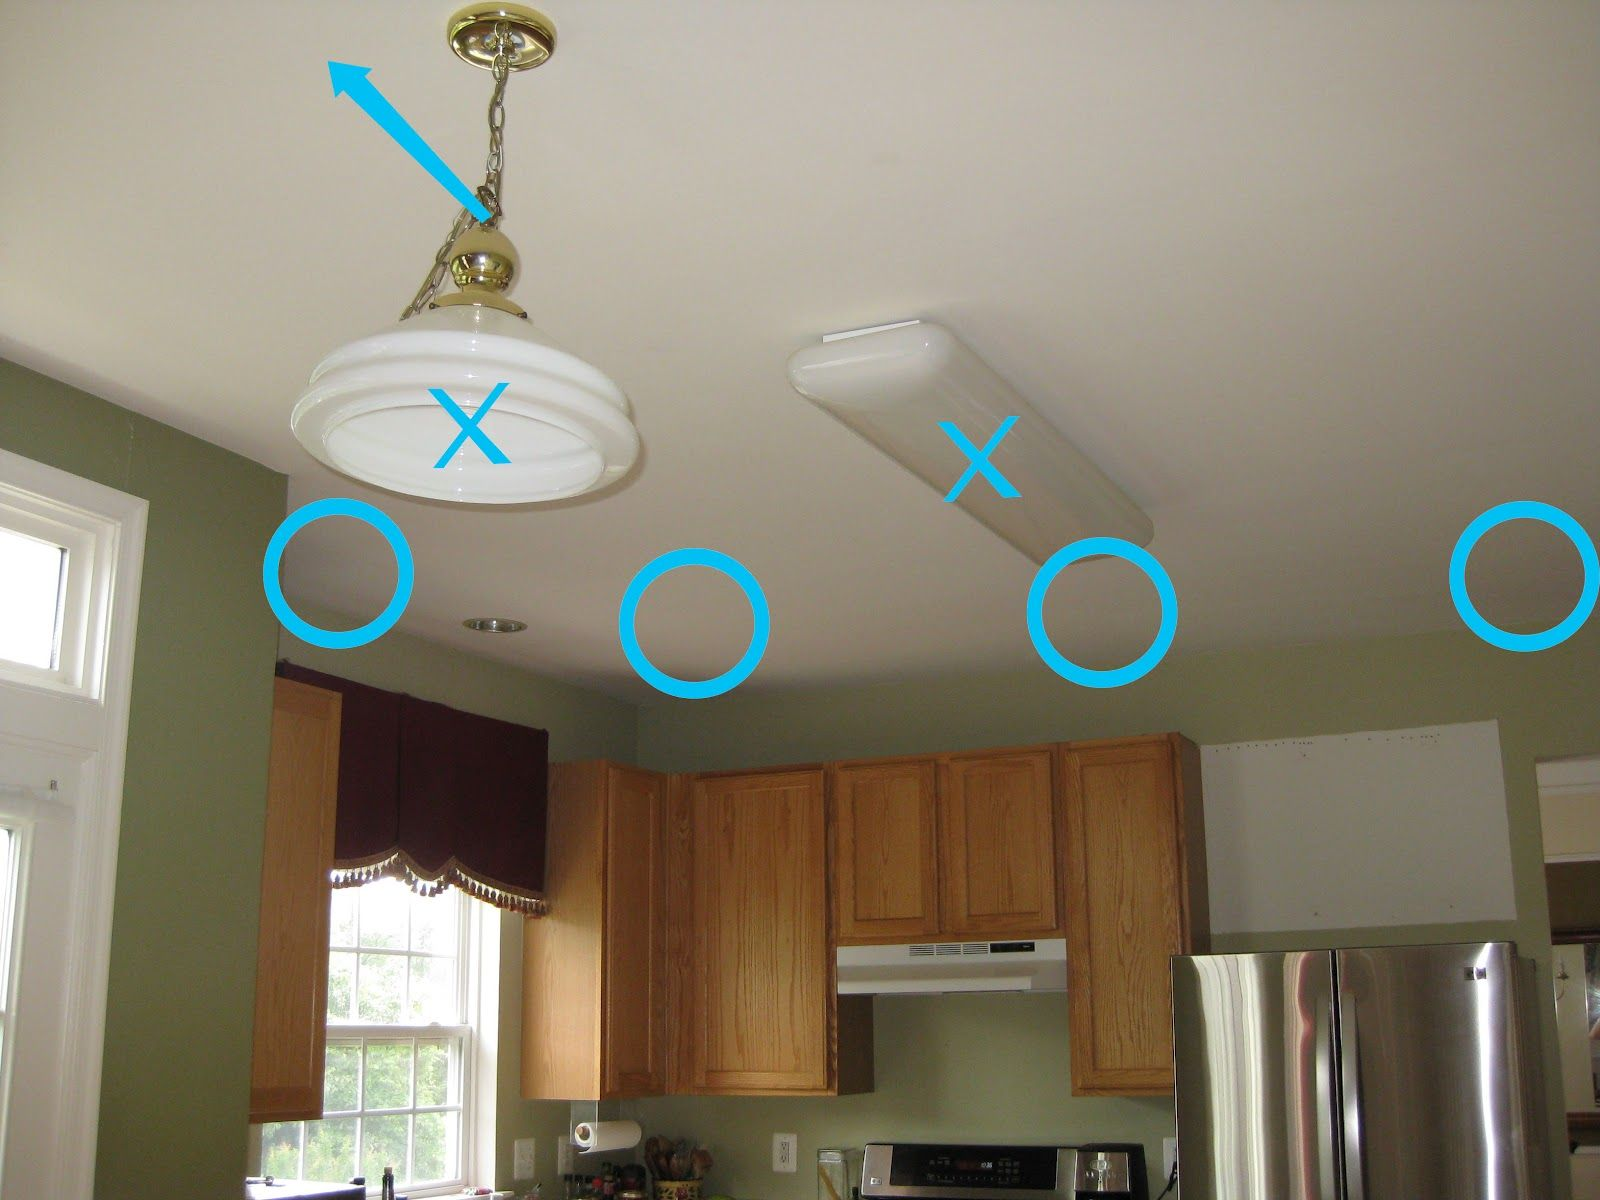 How to replace recessed lighting trim - Thinking About Installing Recessed Lights